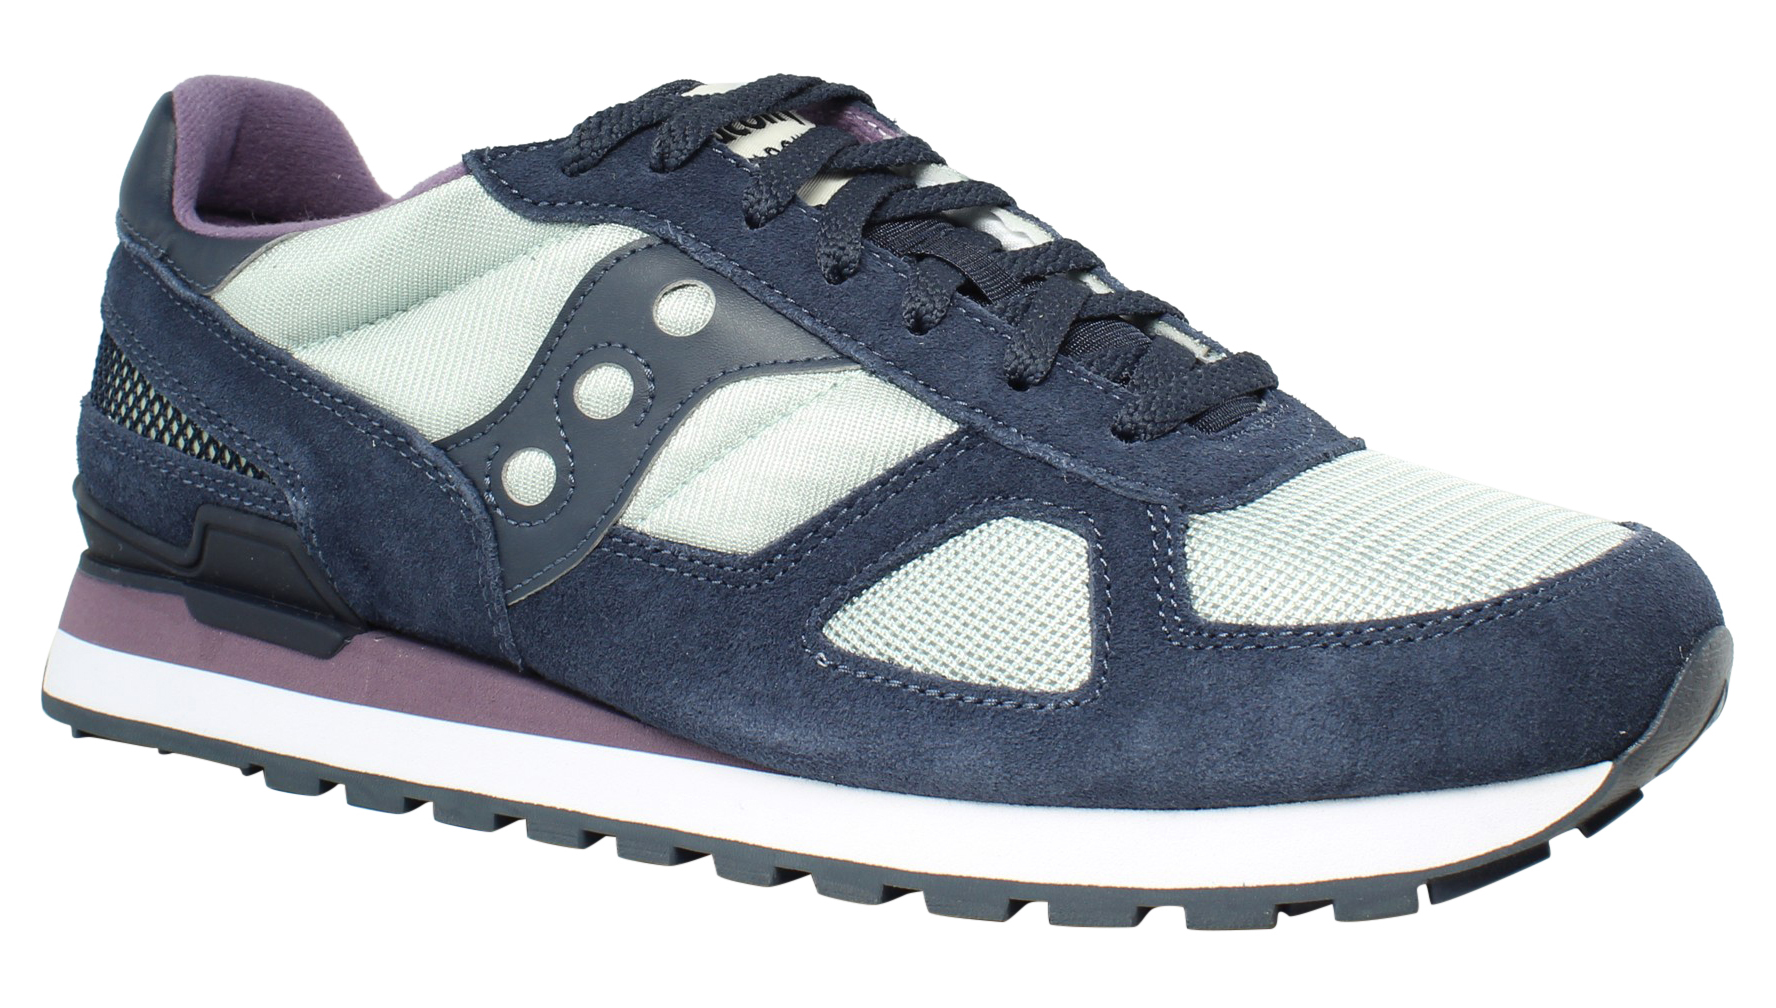 New Saucony Mens S2108-654 GreyNavy Fashion Shoes Size 12.5 by Saucony